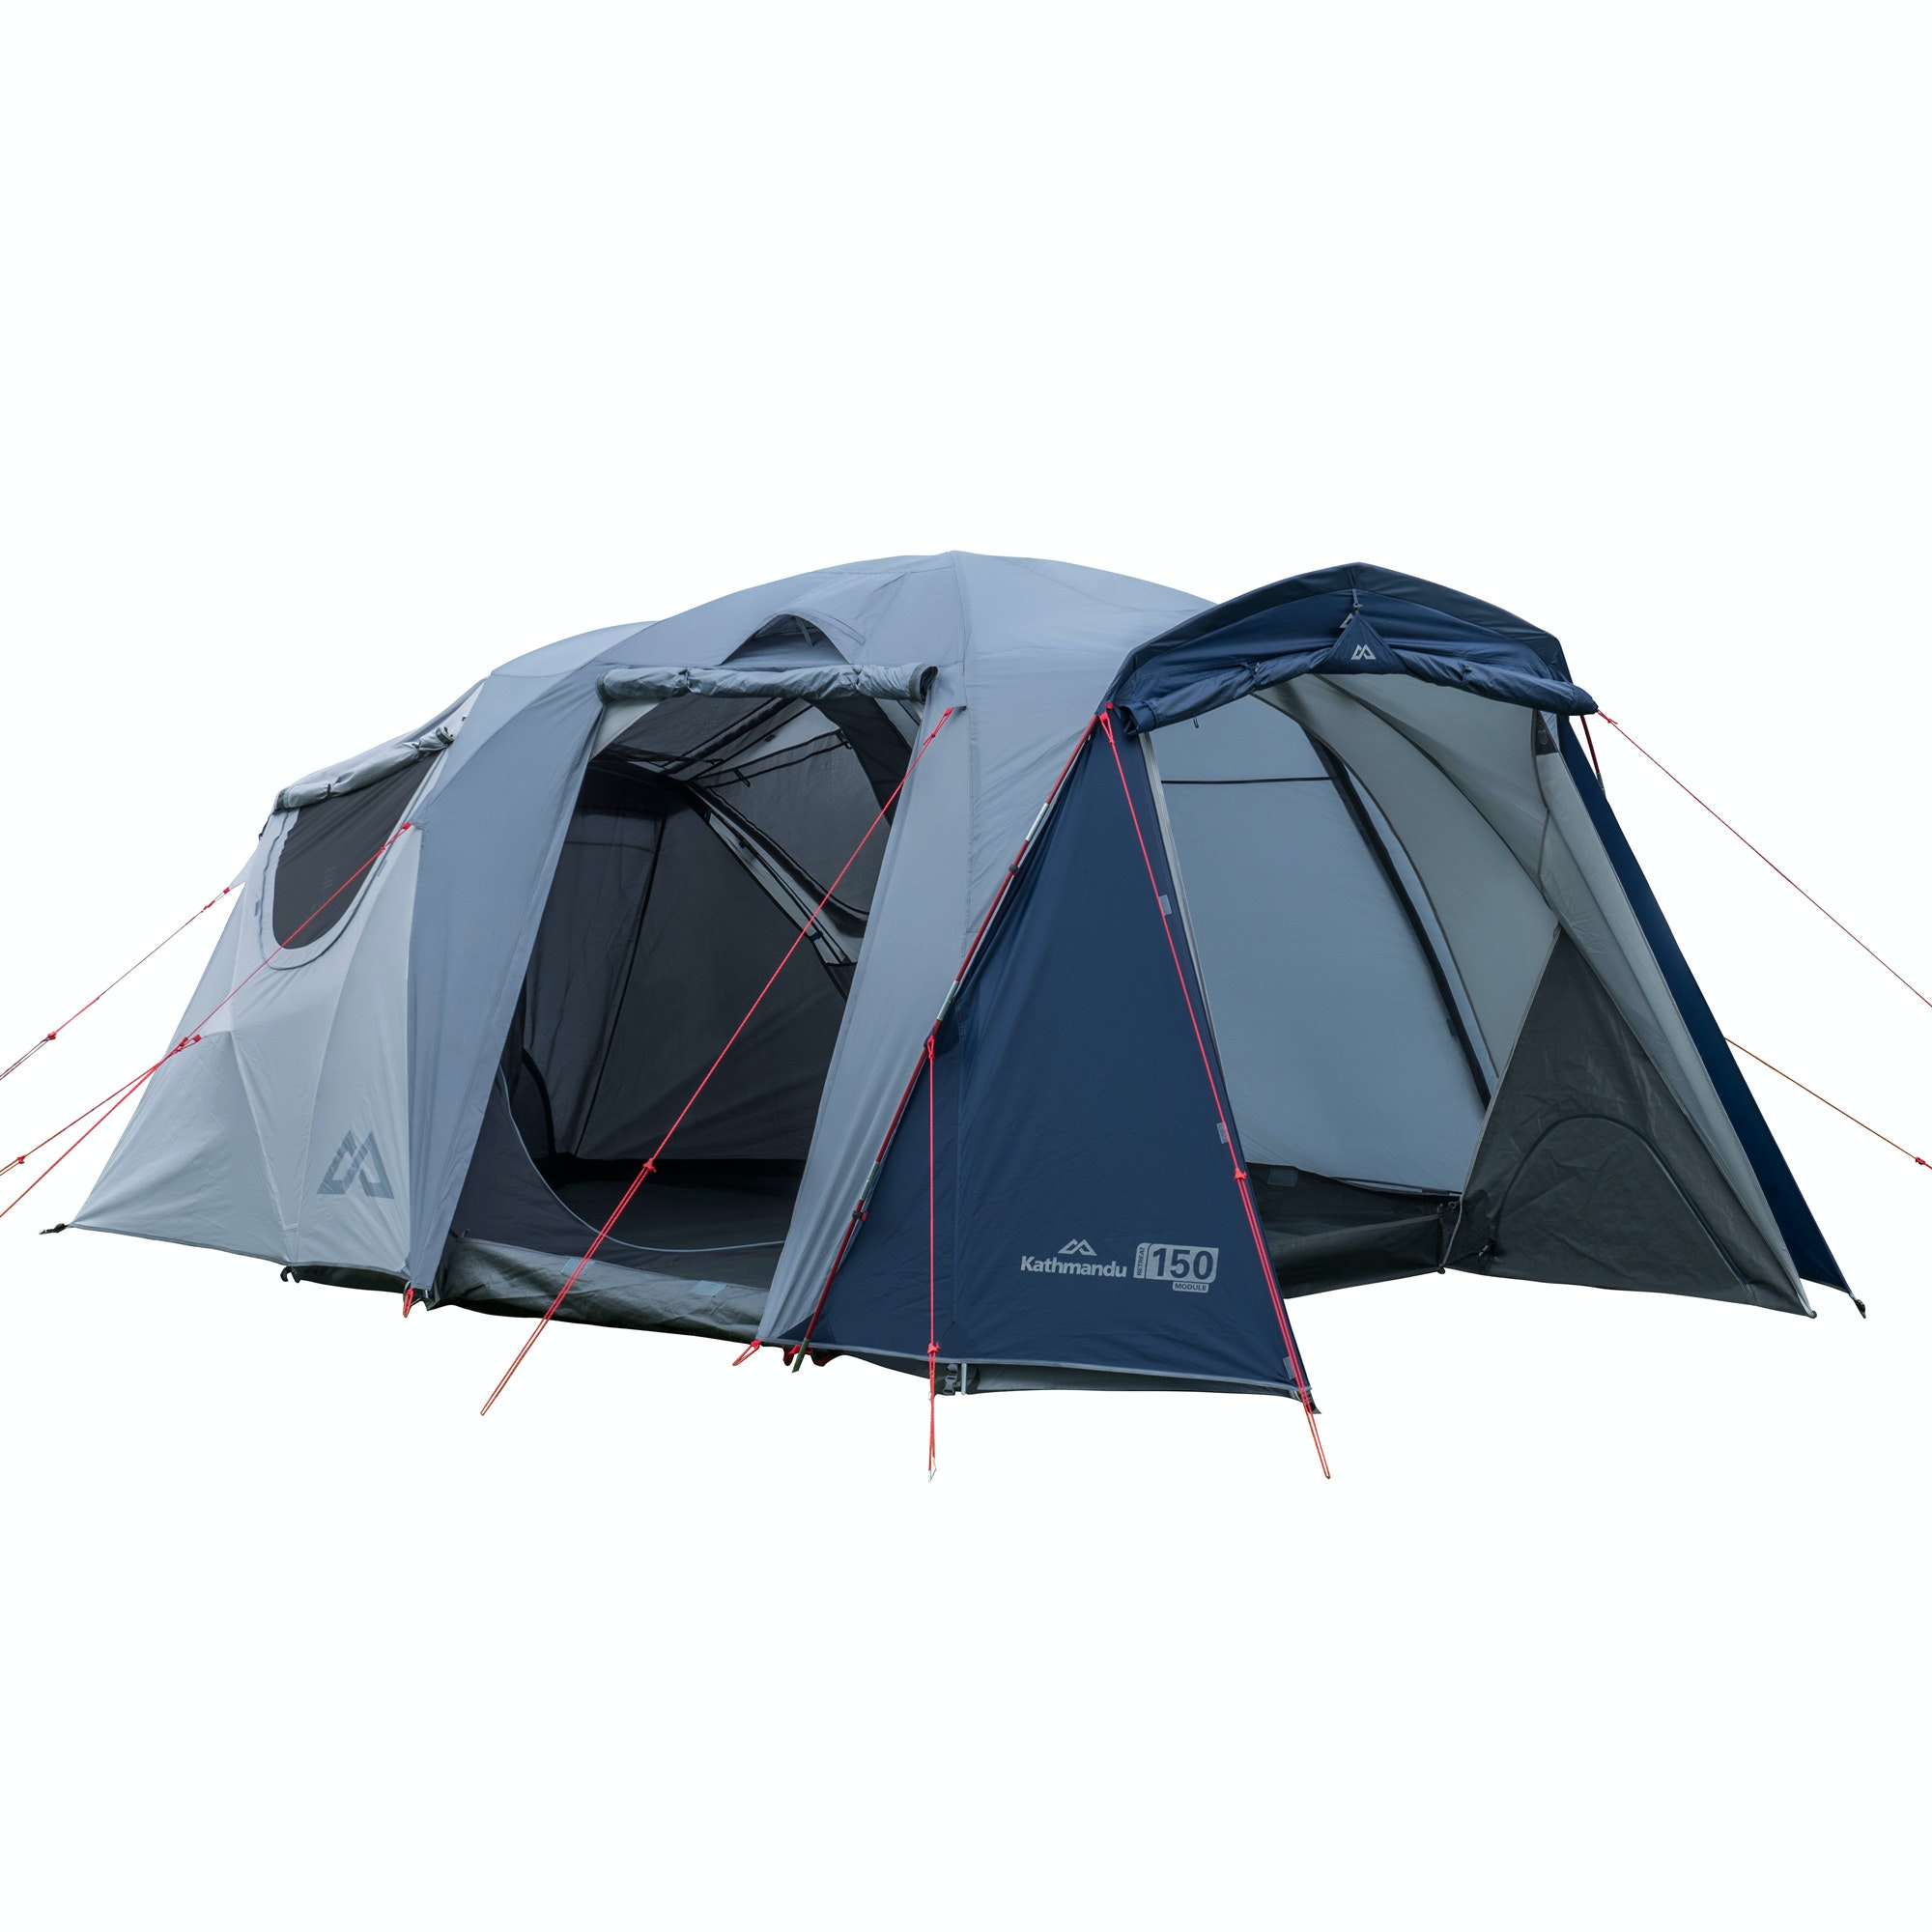 Kathmandu retreat 150 3 person module 2 room camping dome for Small 2 room tent